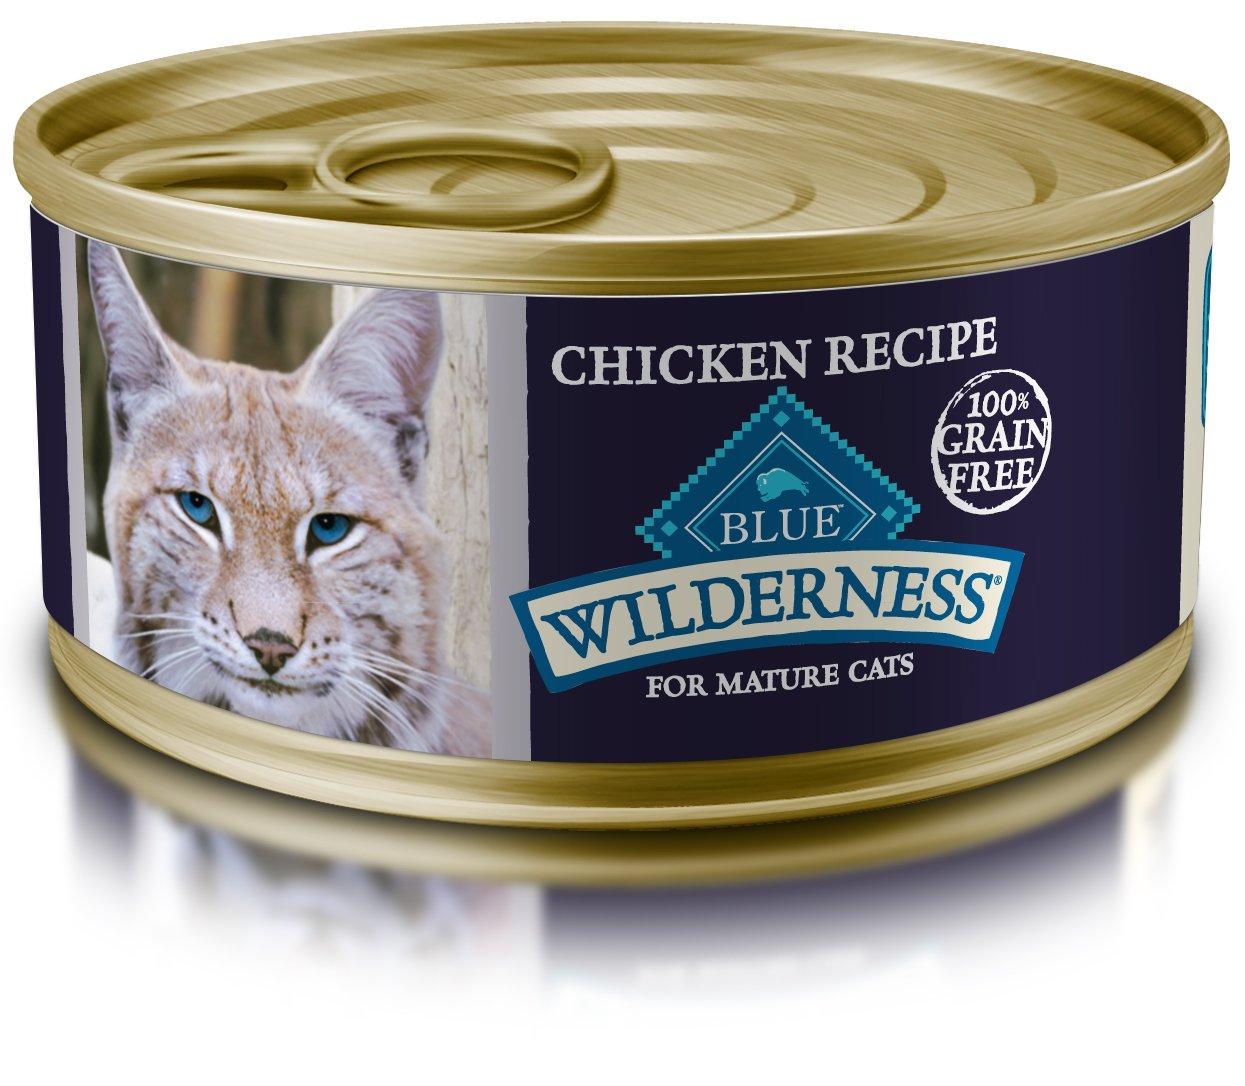 Blue Wilderness Mature Grain Free Chicken Pate Wet Cat Food 5.5-Oz (Pack Of 24) by Blue Buffalo